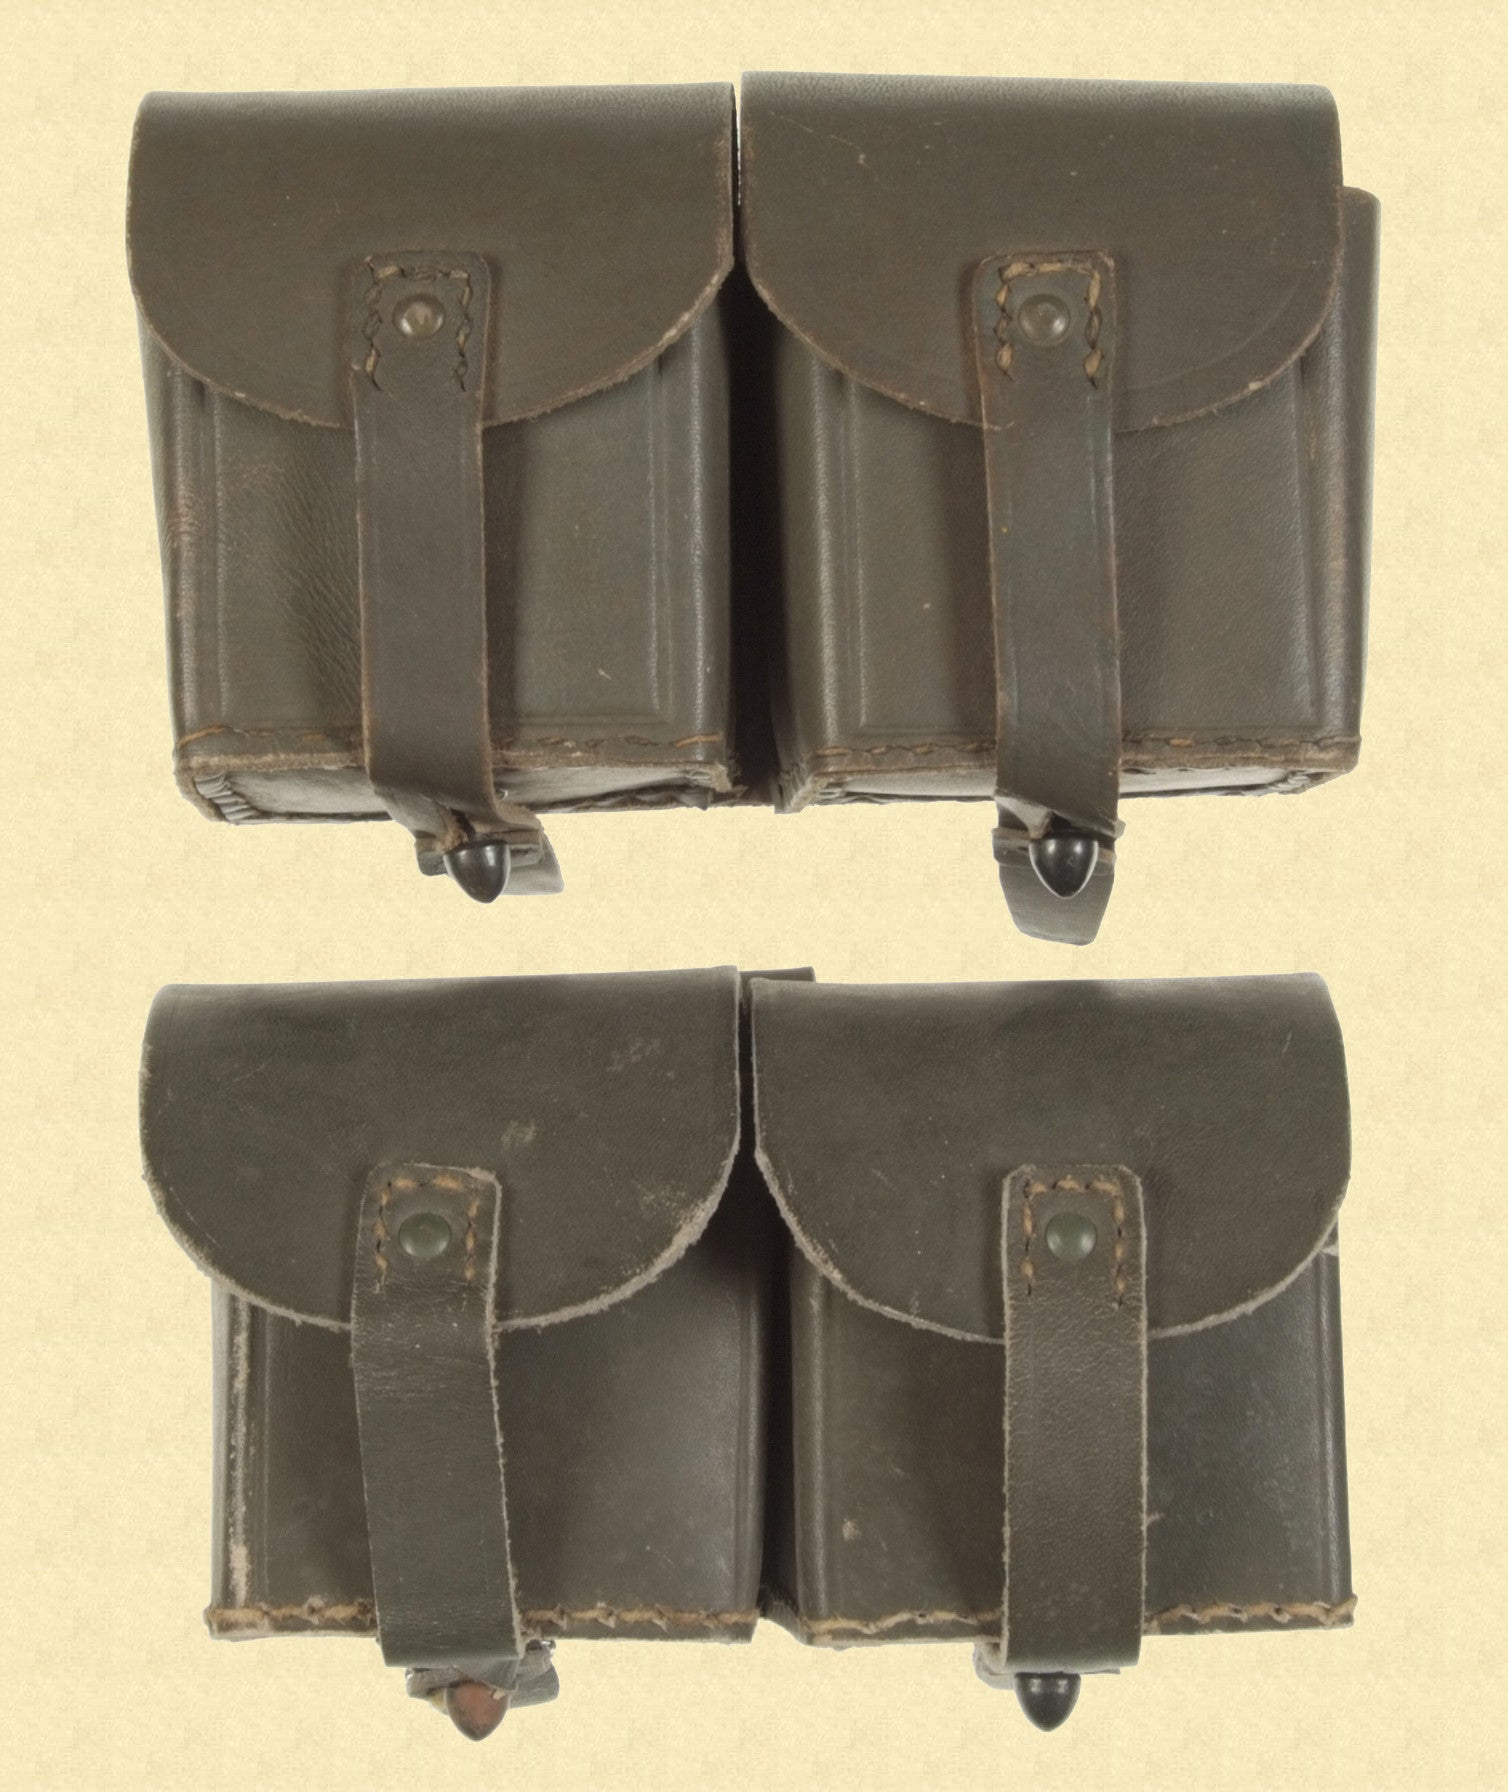 ITALIAN WW2 RIFLE AMMO POUCH